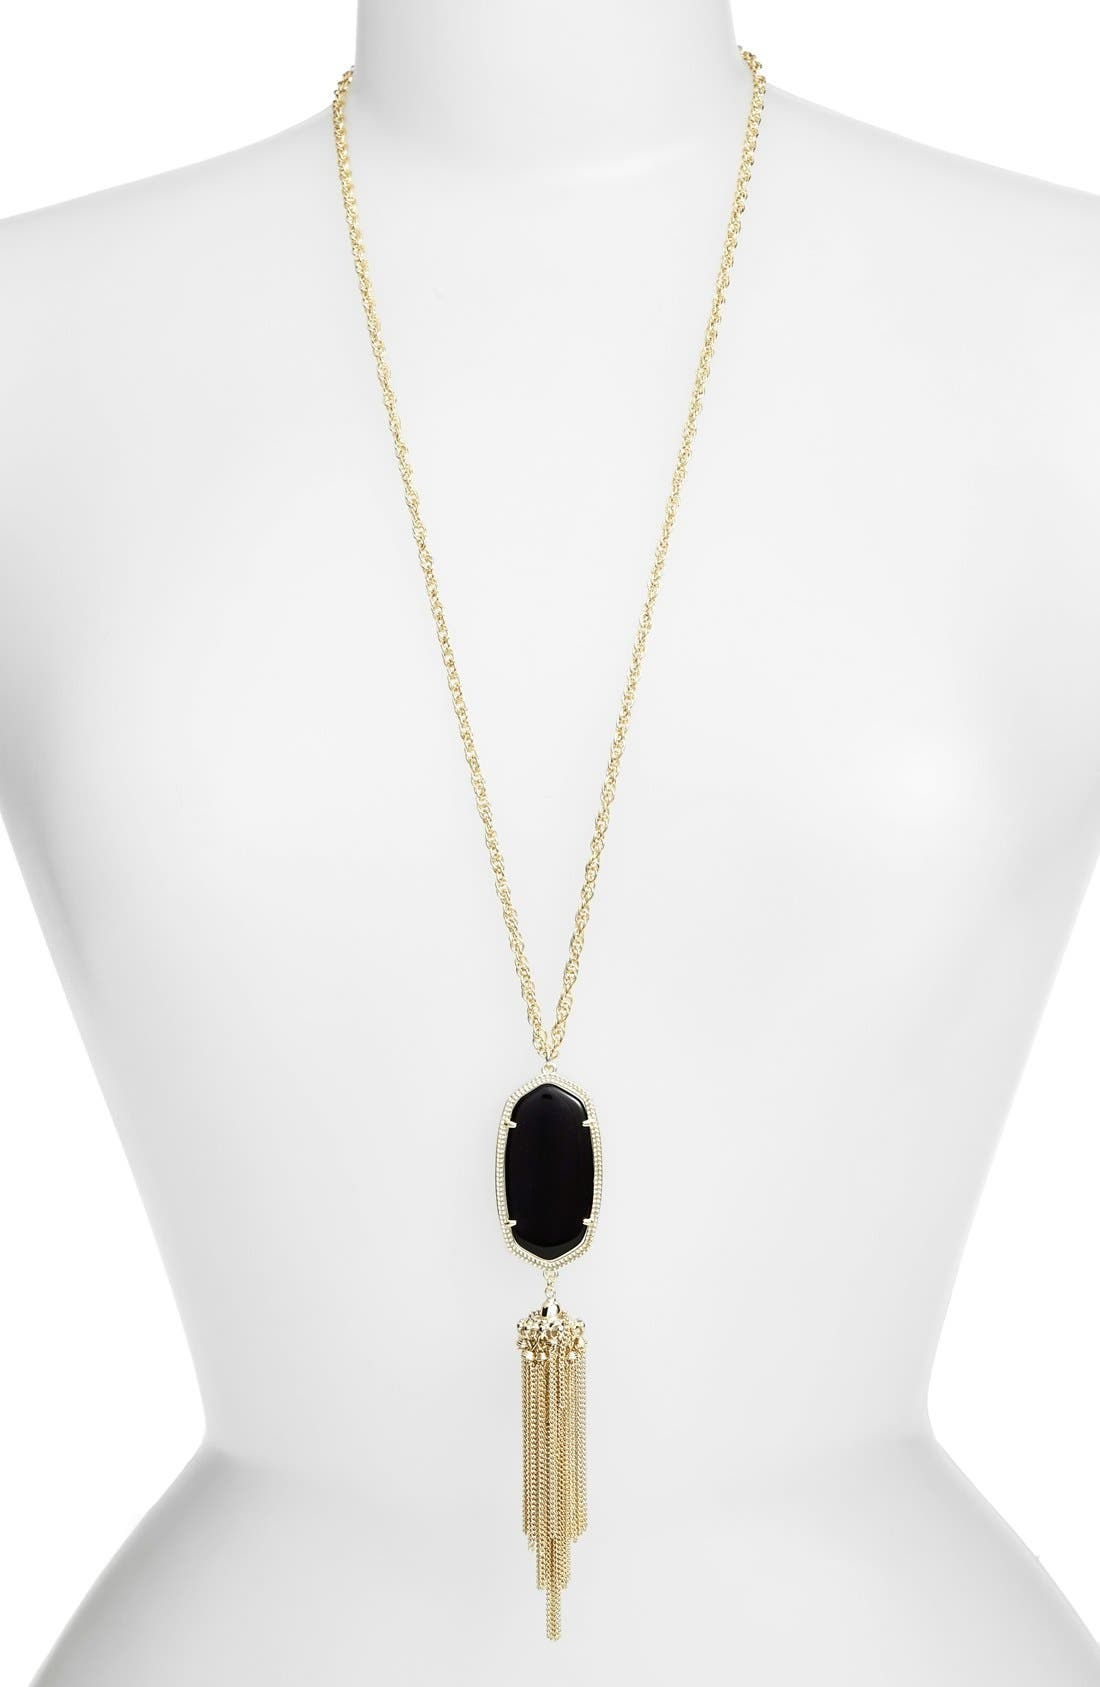 KENDRA SCOTT Rayne Stone Tassel Pendant Necklace, Main, color, 001